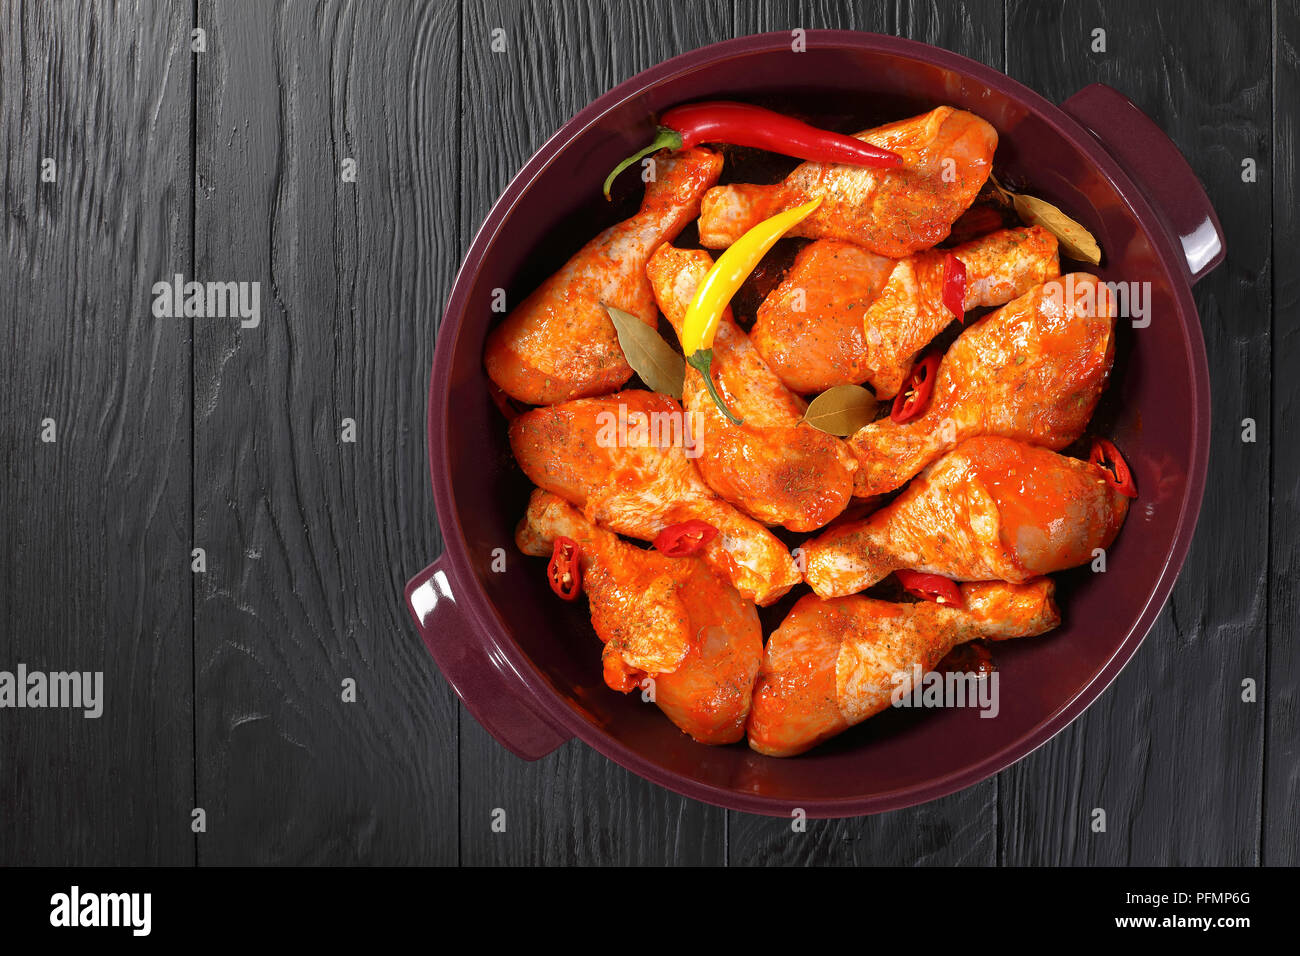 raw marinated chicken drumsticks rubbed with finely ground spice, chili pepper pieces, bay leaves  prepared to roast in a dish, view from above Stock Photo